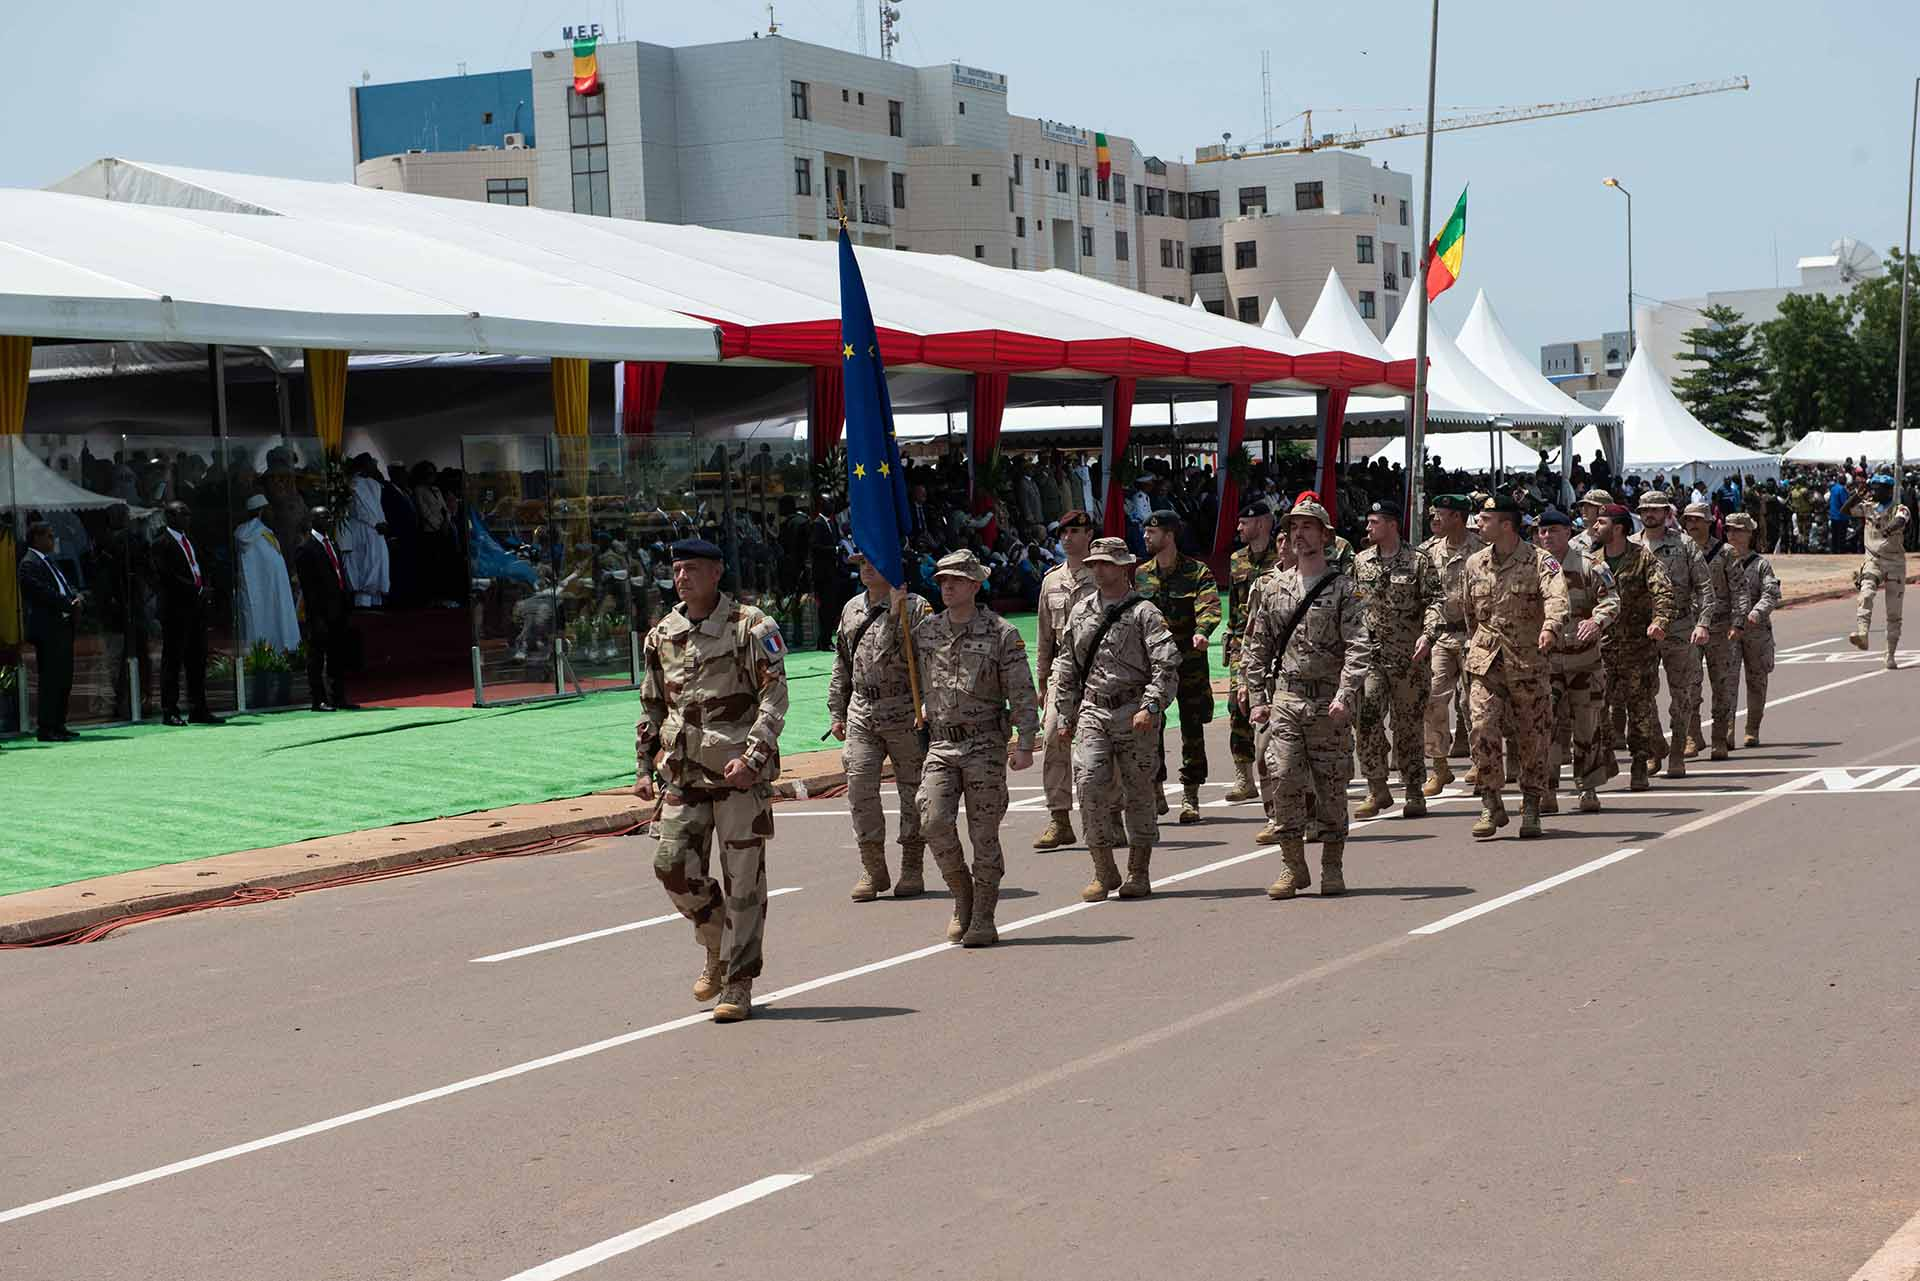 EUTM MALI, PRESENT AT THE MALIAN INDEPENDENCE DAY PARADE